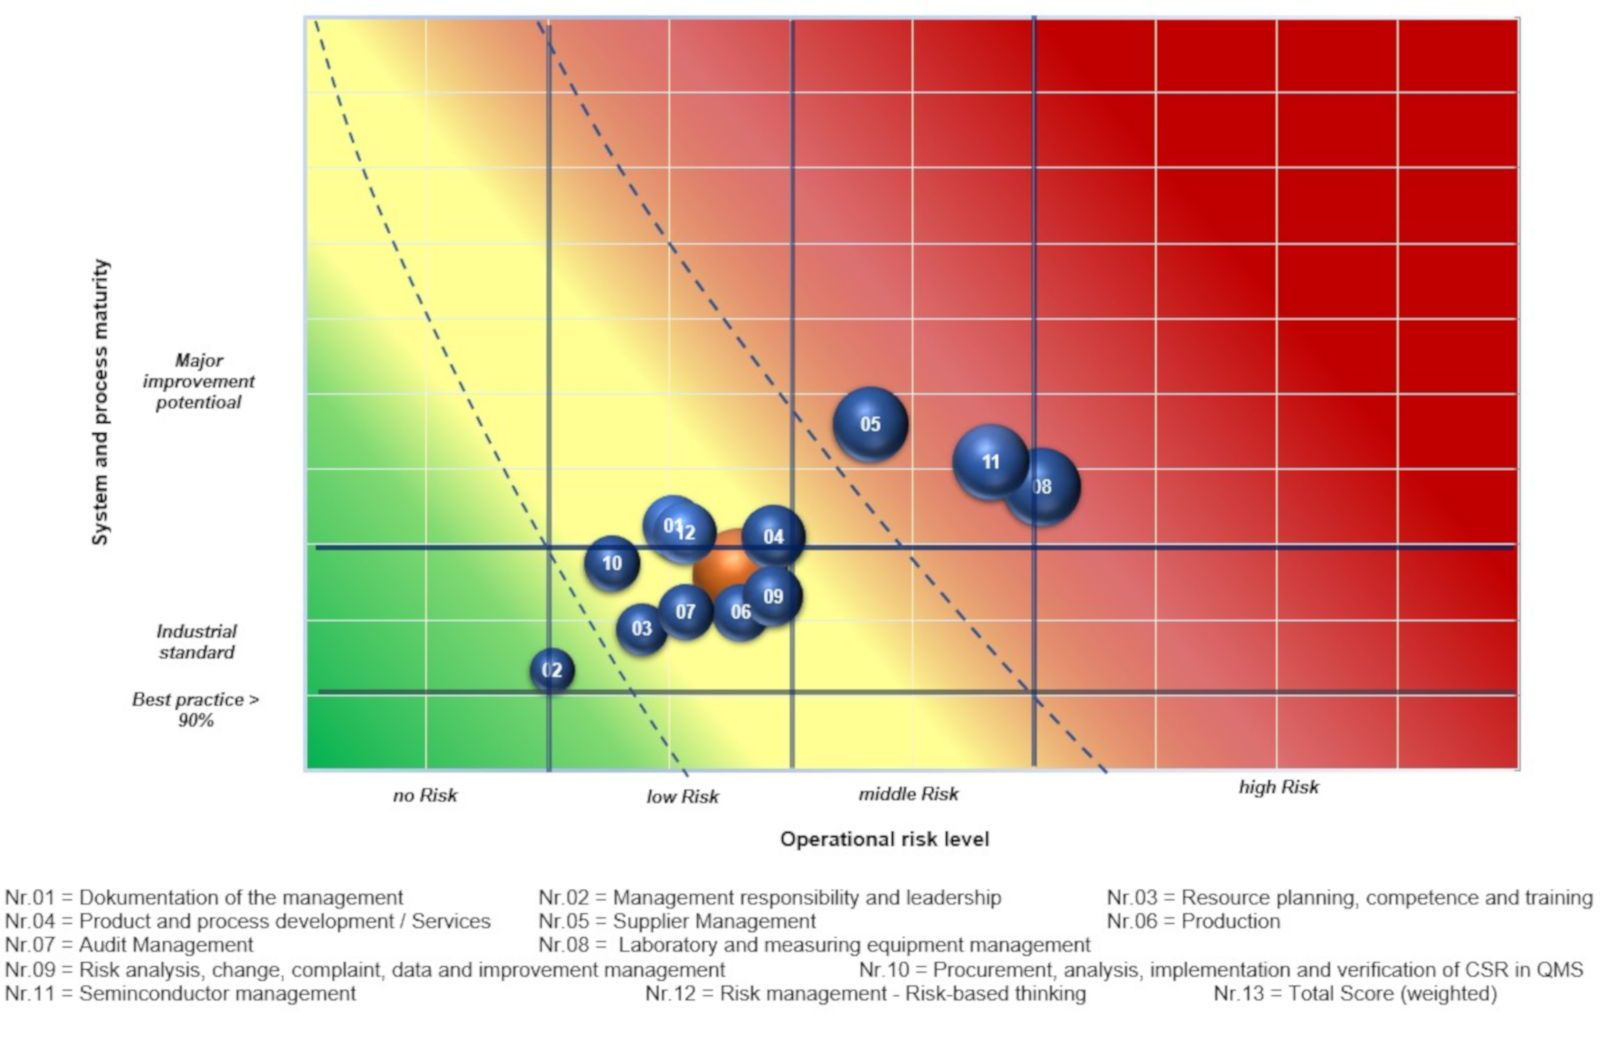 Risk-Matrix in RPAS™